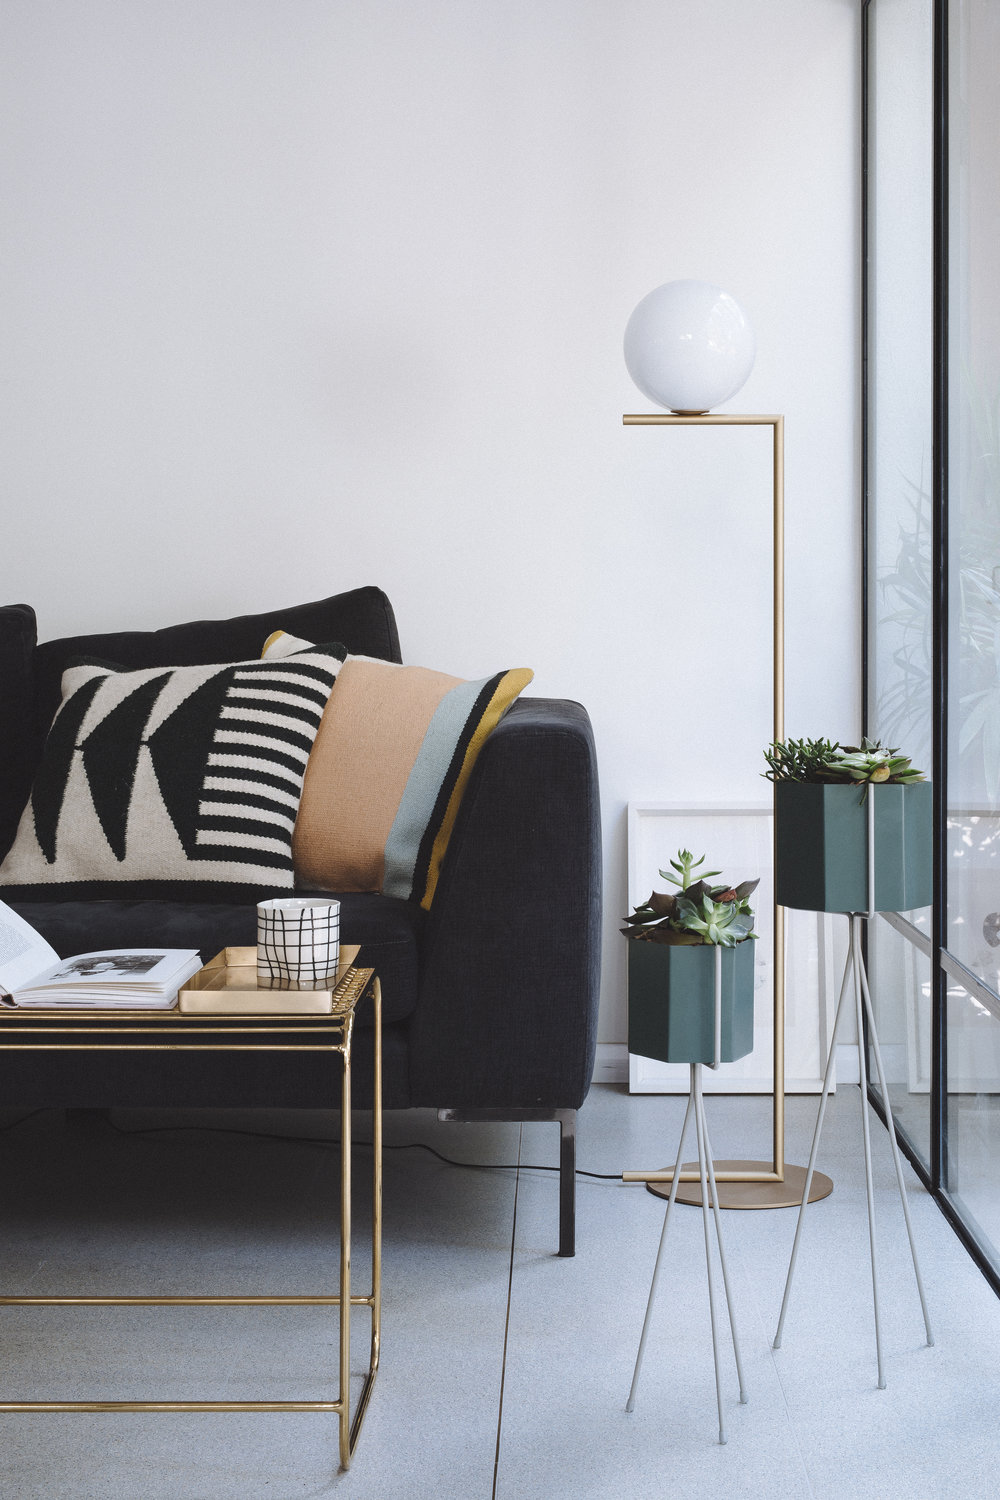 Flos IC light. Living room design. Velvet sofa. Ferm living